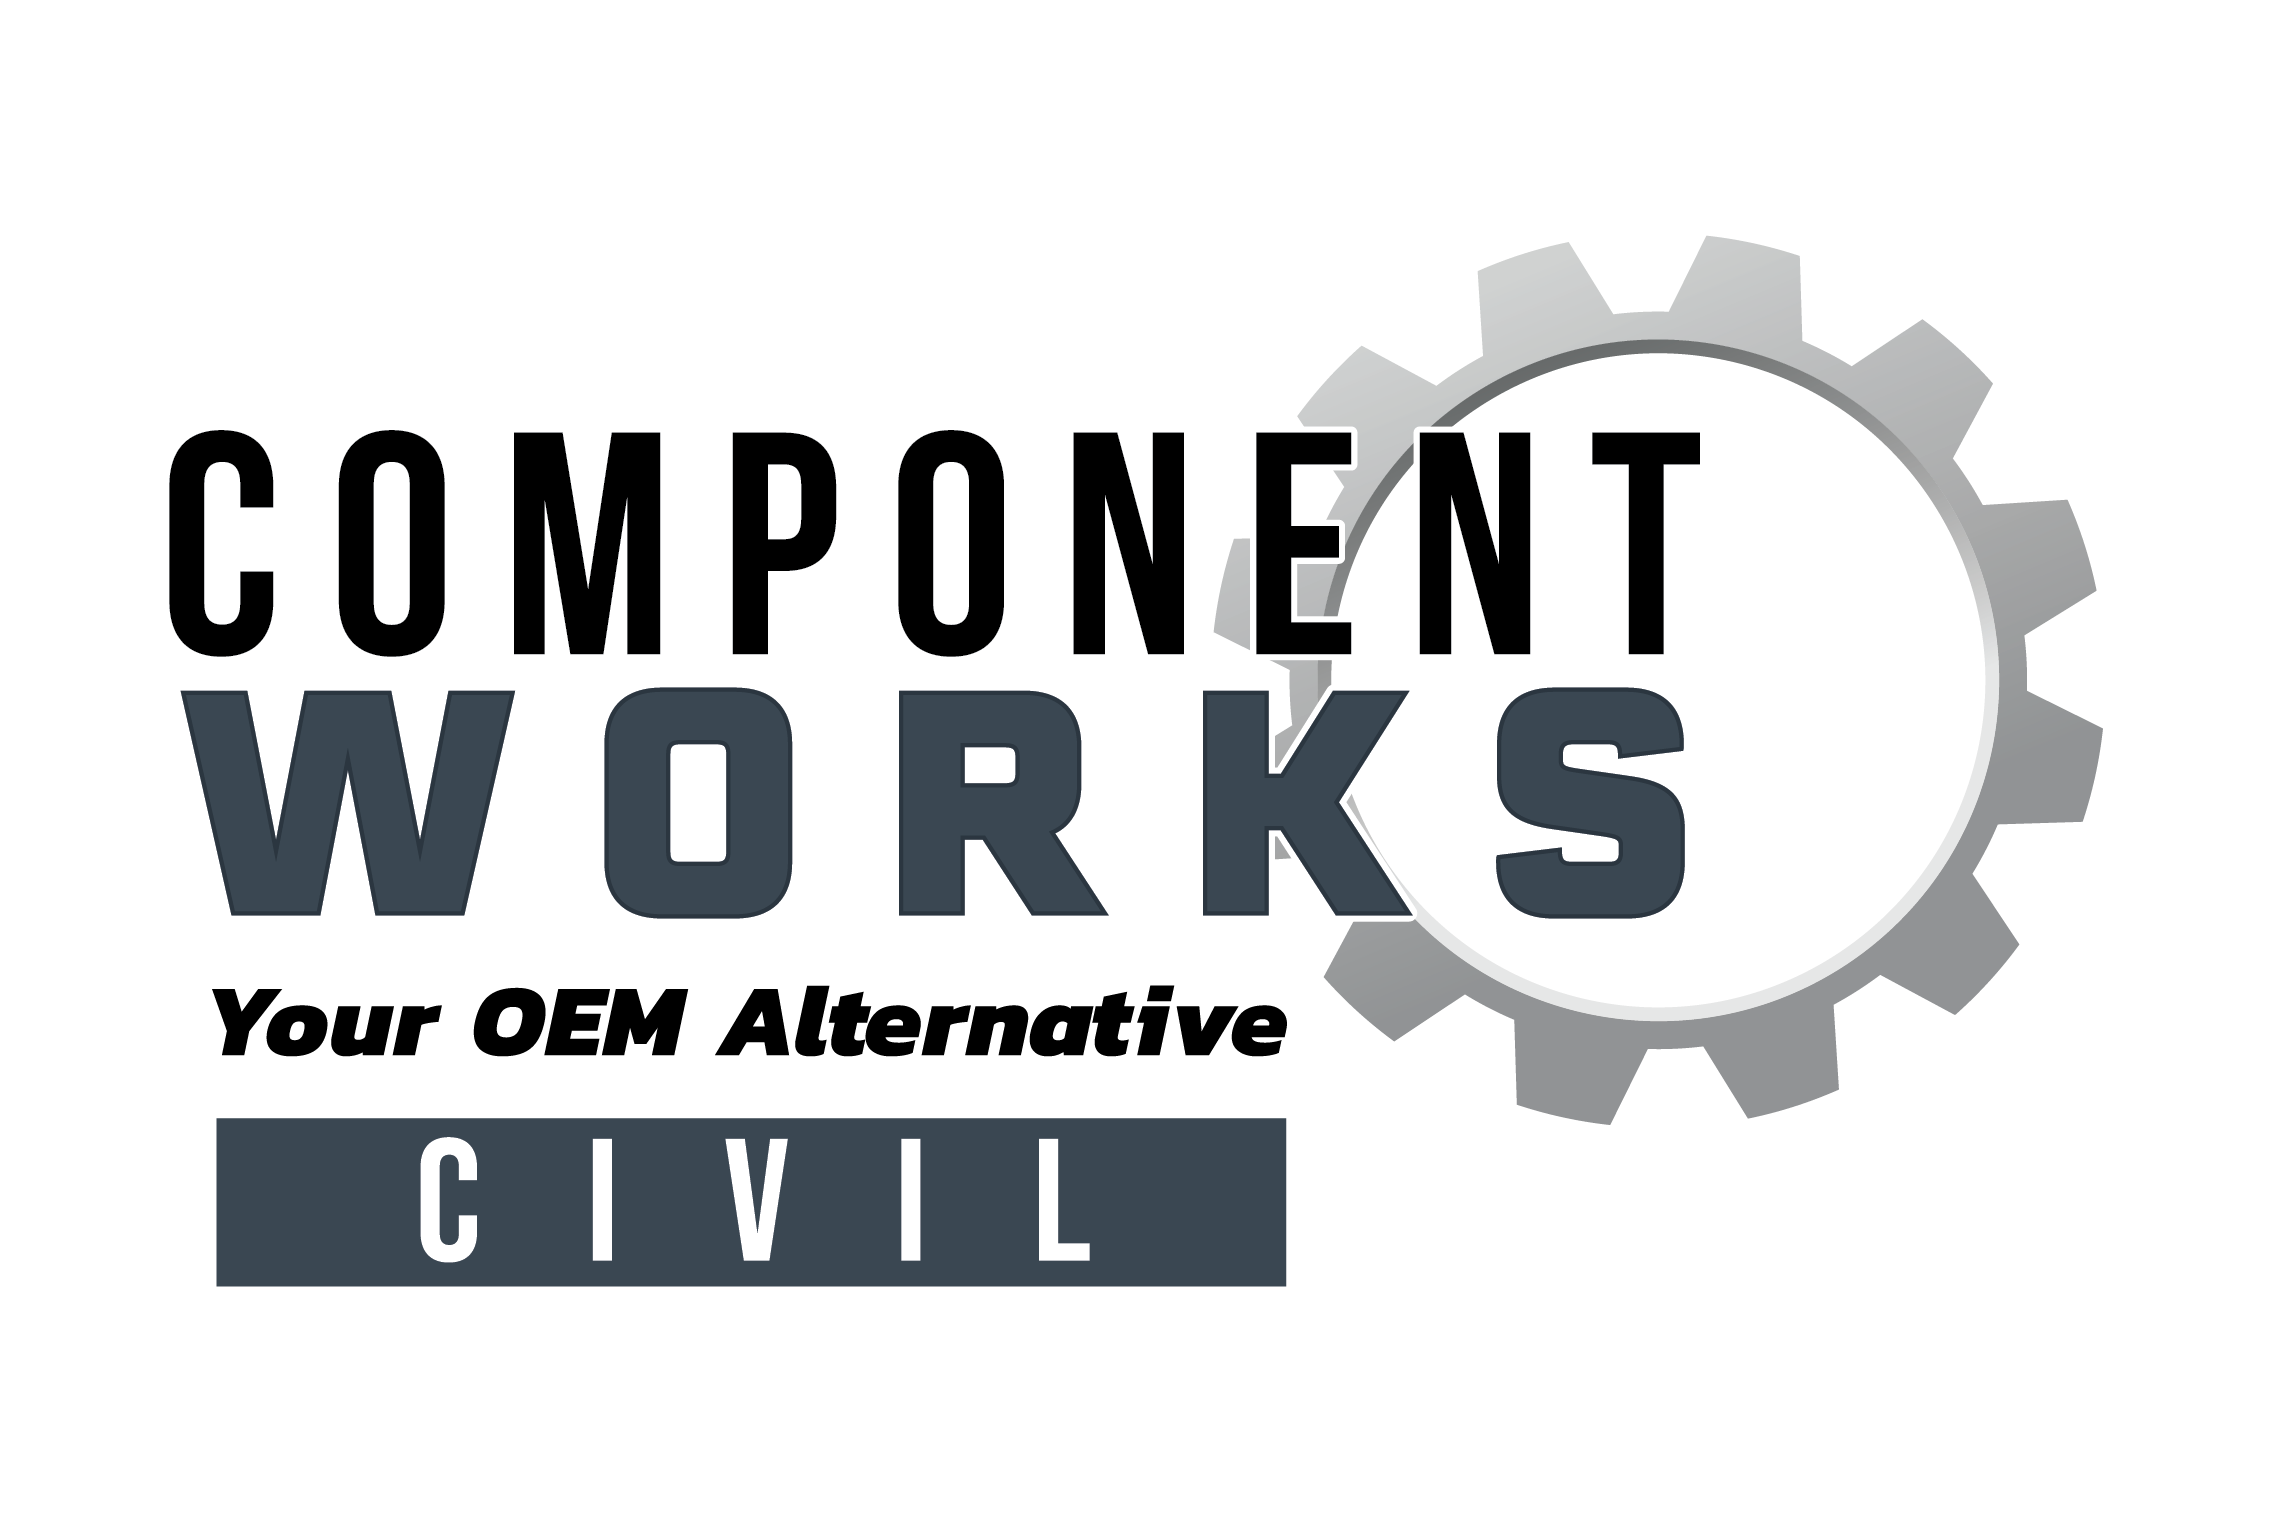 Civil CW LOGOS Outlines 01